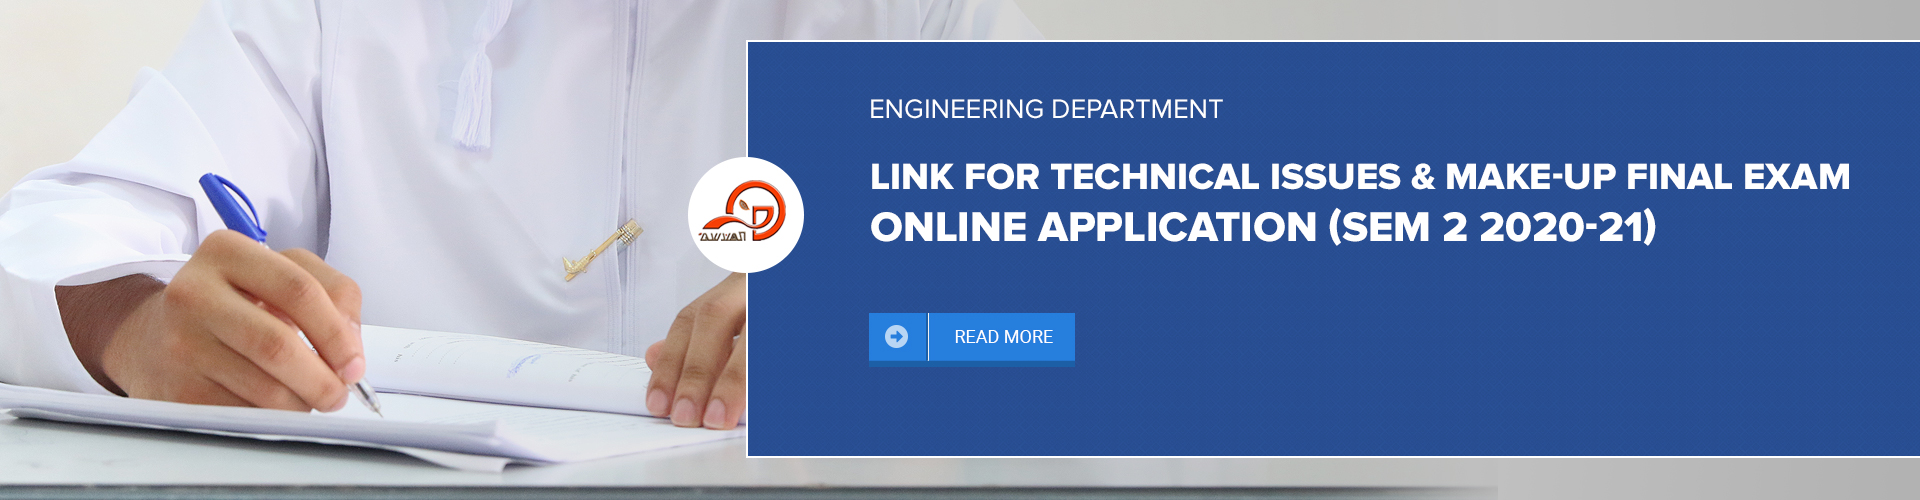 Engineering Department - Link for Technical Issues & Make-up Final Exam Online Application (Sem 2, 2020-21)